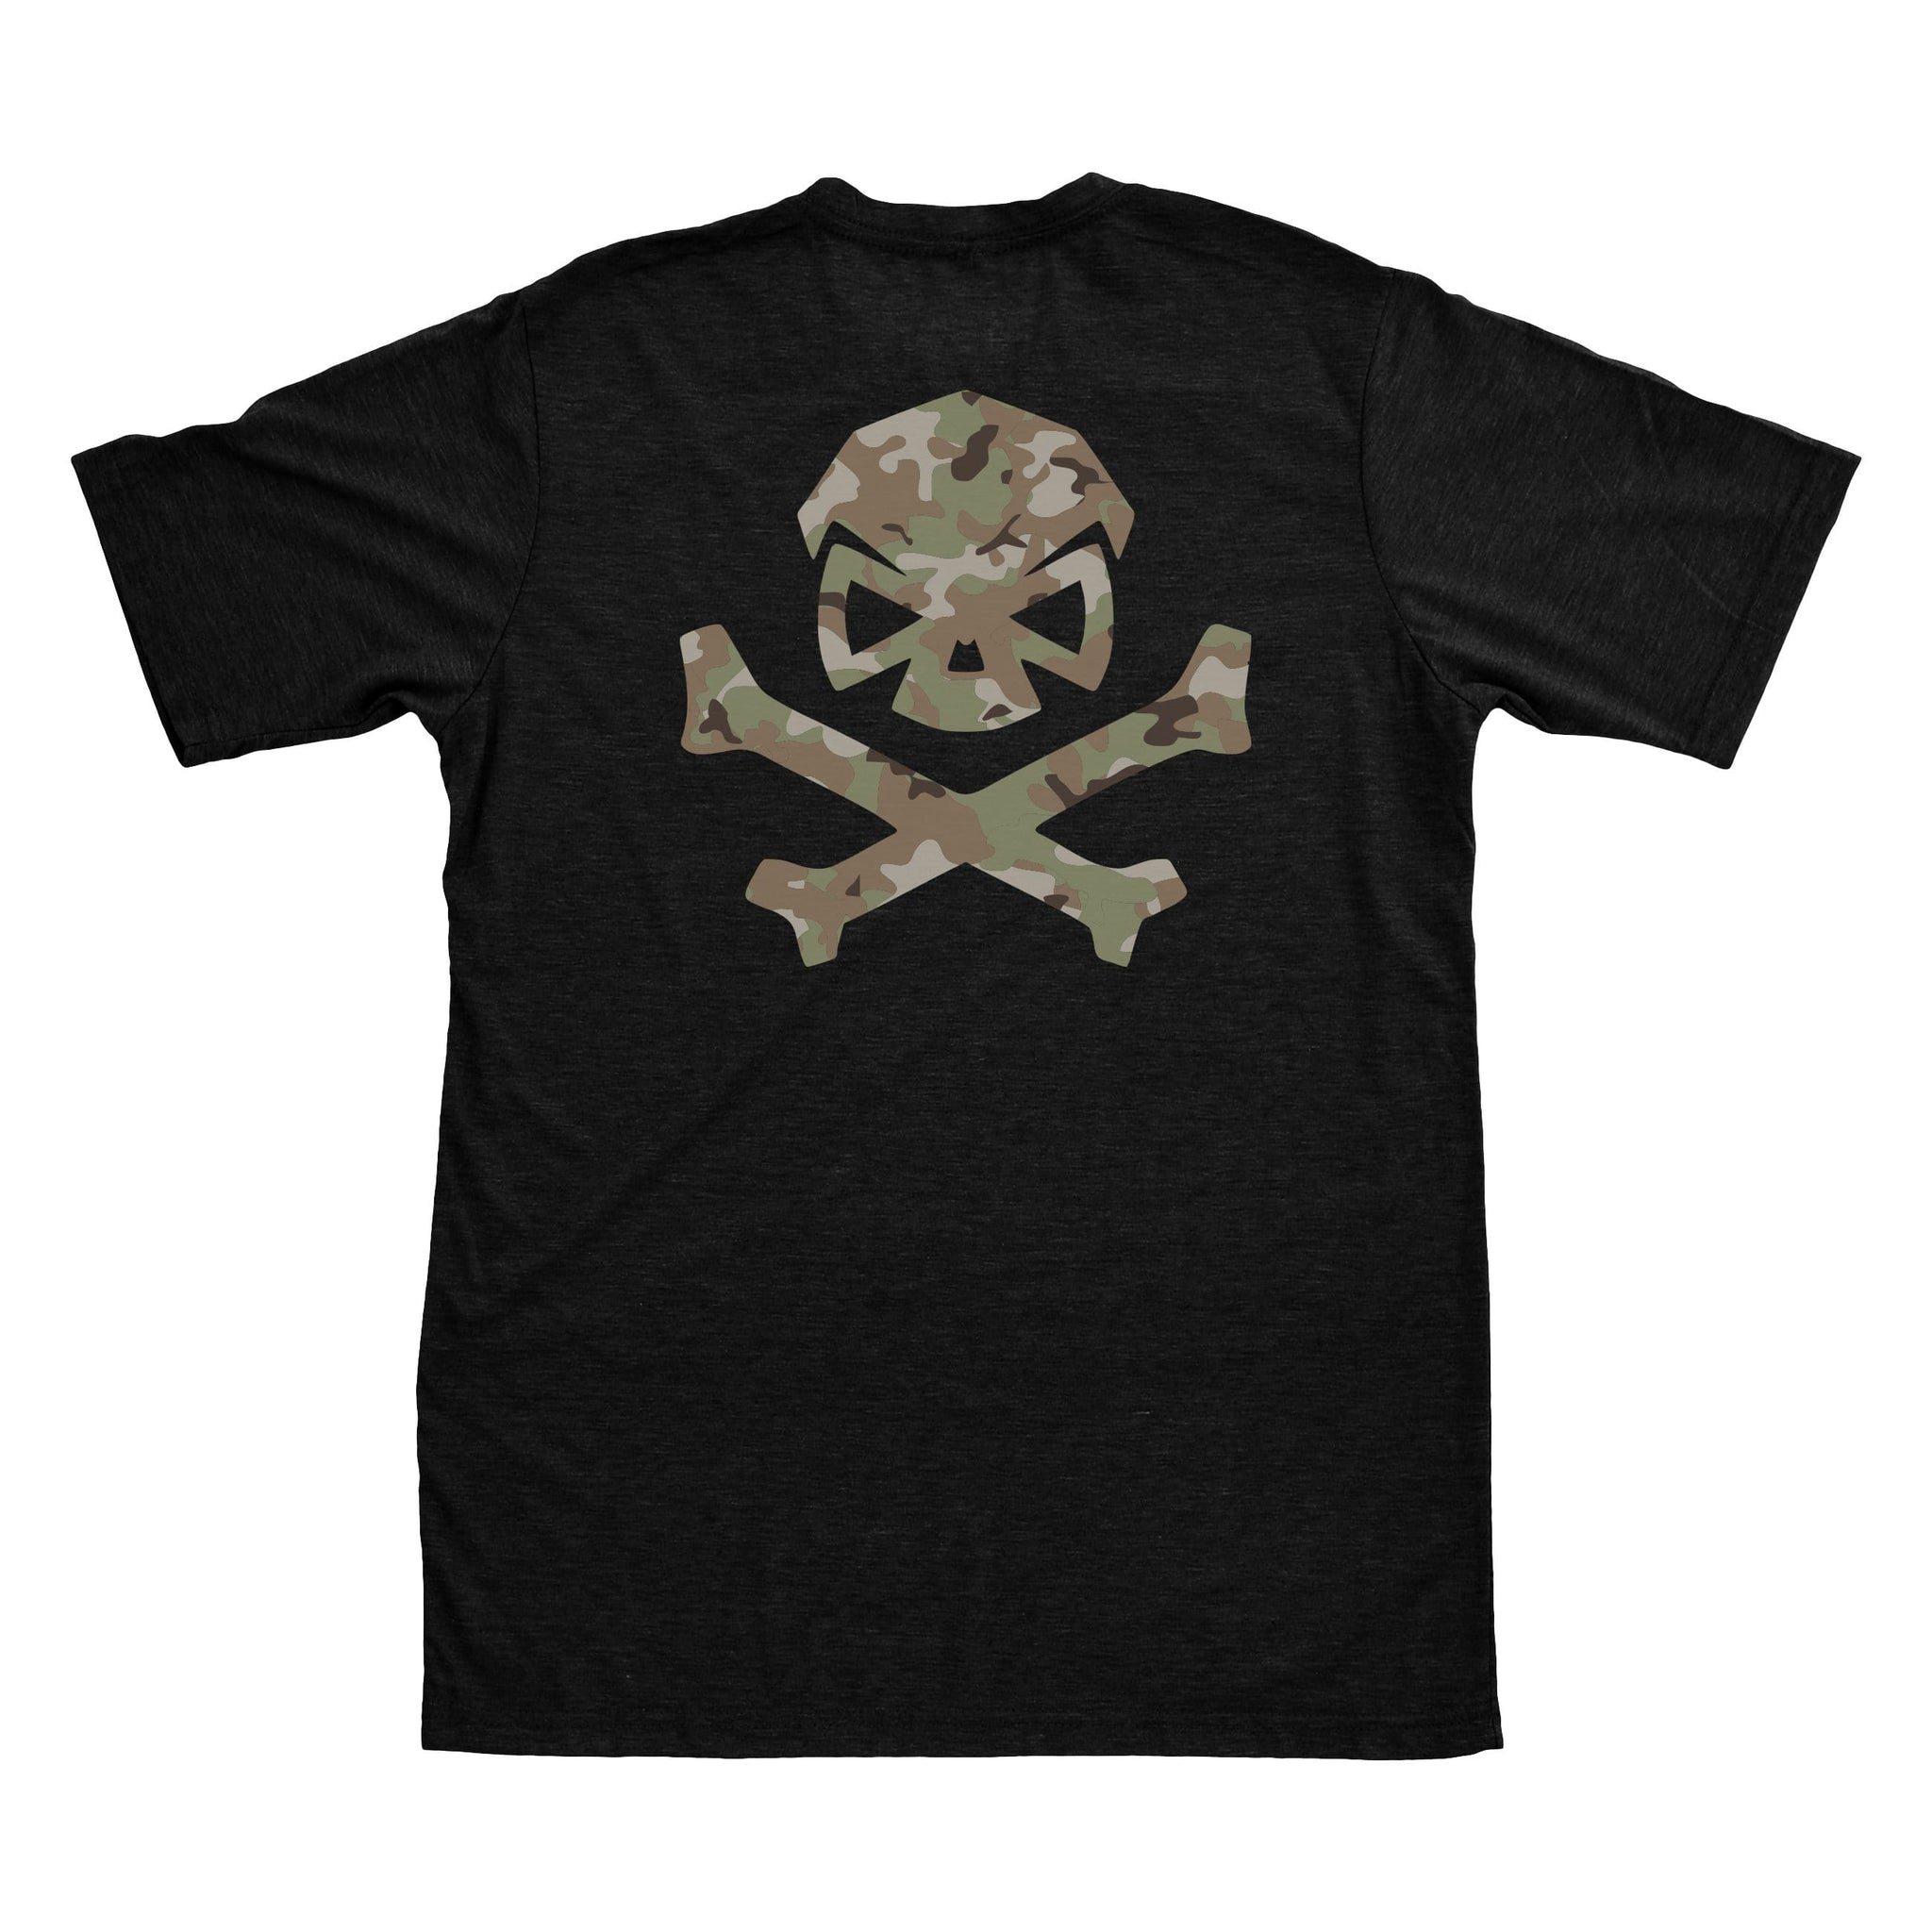 Multicam Logo Tee - Black/Green_Multicam - T-Shirts - Pipe Hitters Union